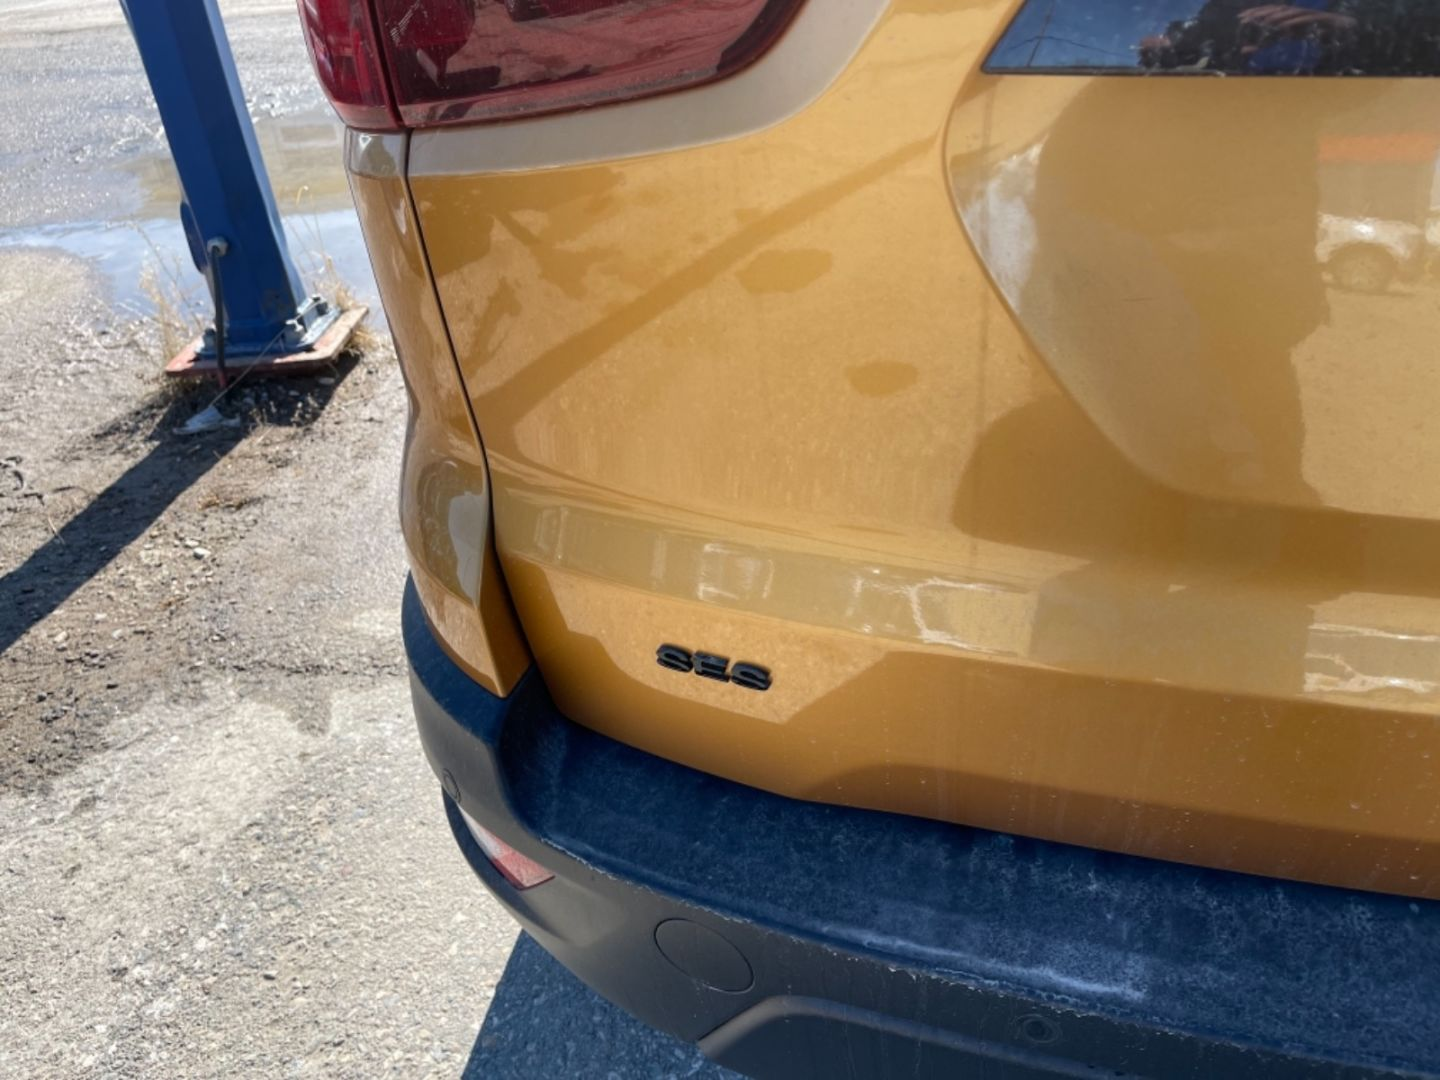 2021 Ford EcoSport SES for sale in Hay River, Northwest Territories